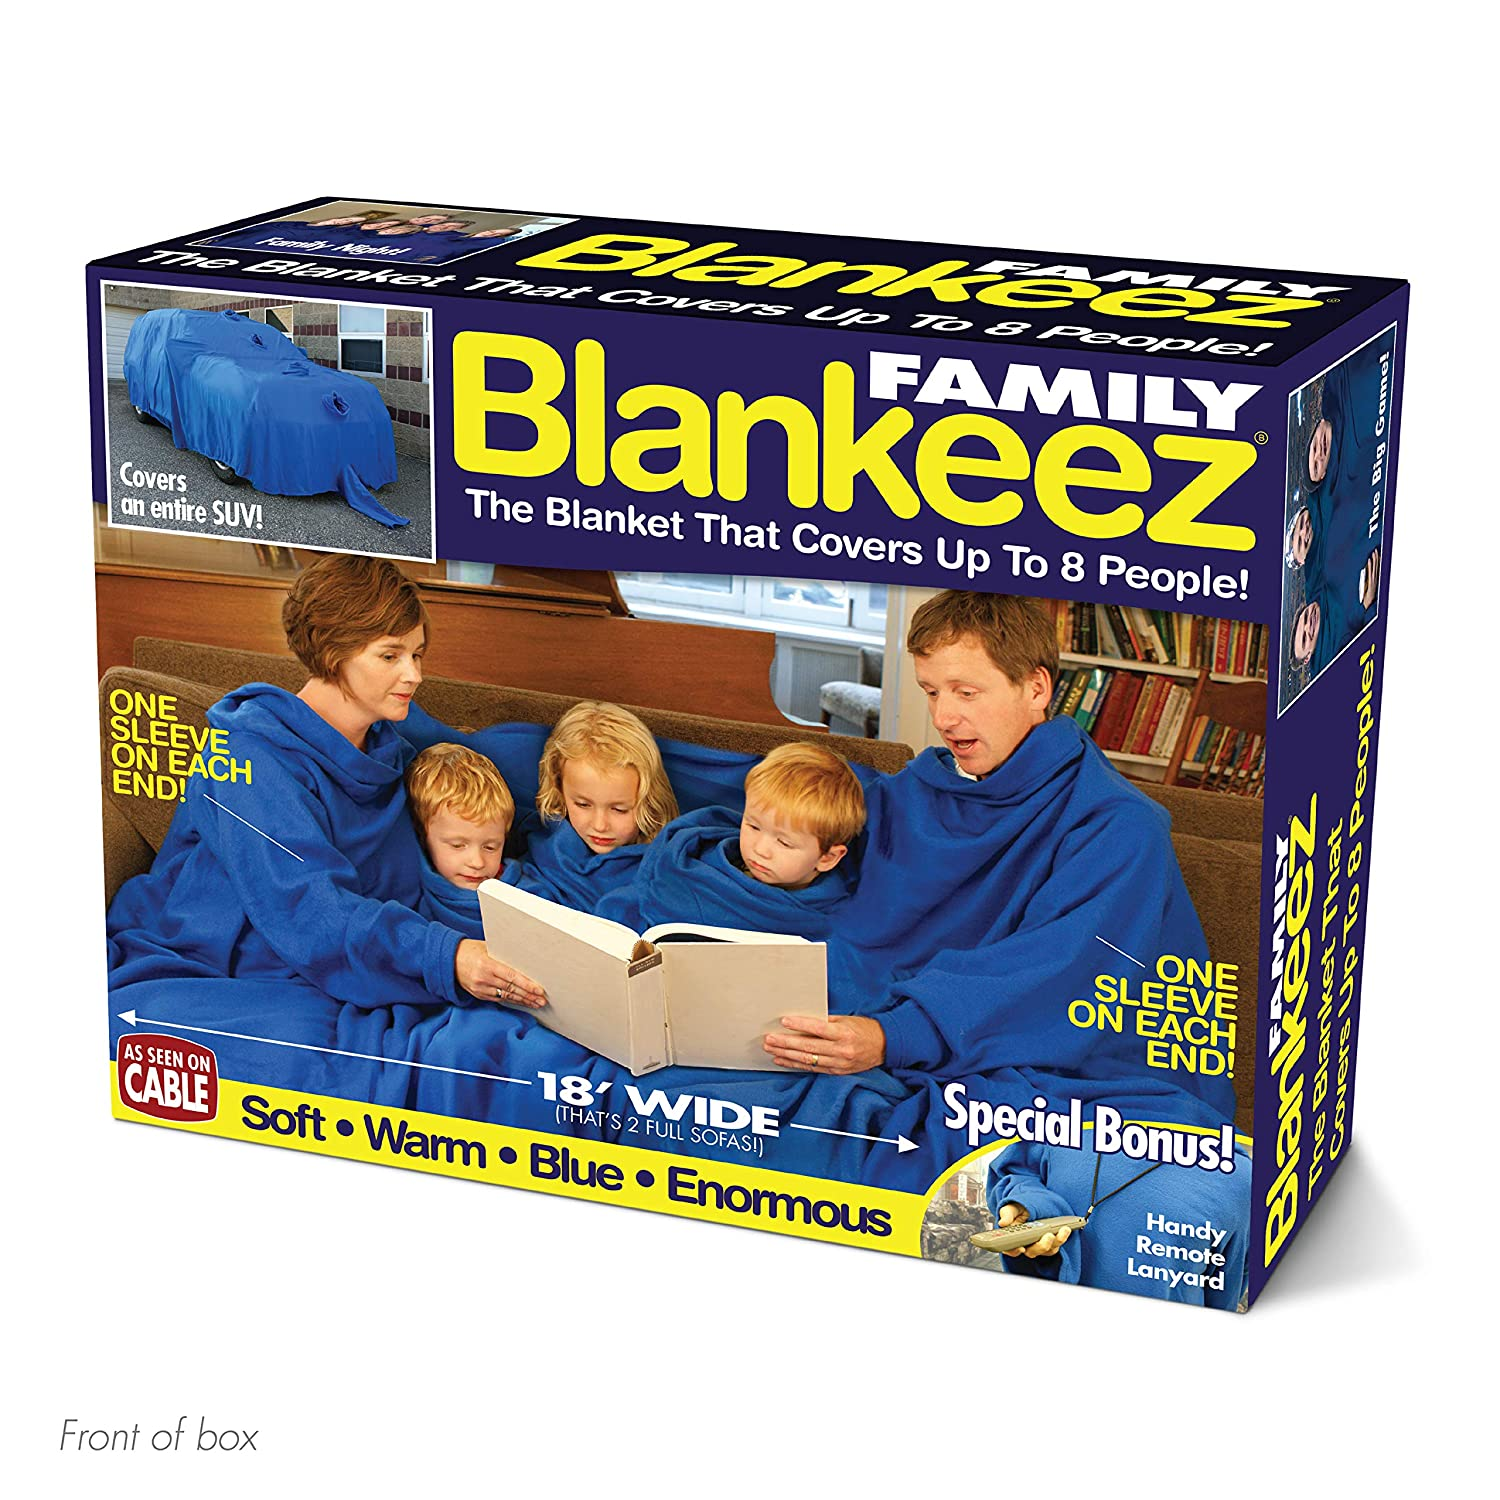 Prank Your Friends with these Hilarious Christmas Gifts   Rare